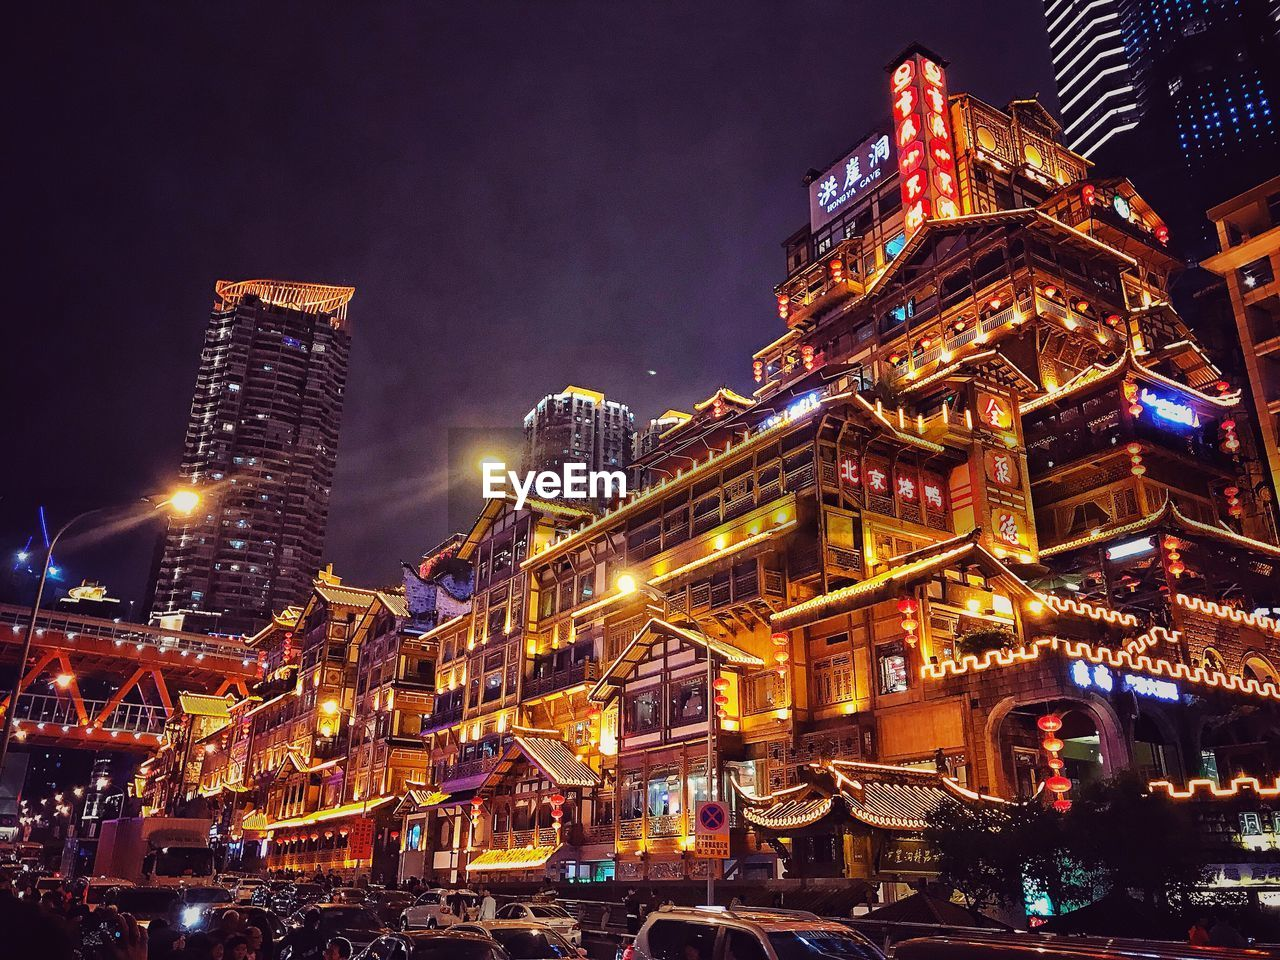 illuminated, night, building exterior, architecture, built structure, city, building, sky, low angle view, tall - high, nature, no people, outdoors, tower, office building exterior, glowing, cityscape, travel destinations, city life, skyscraper